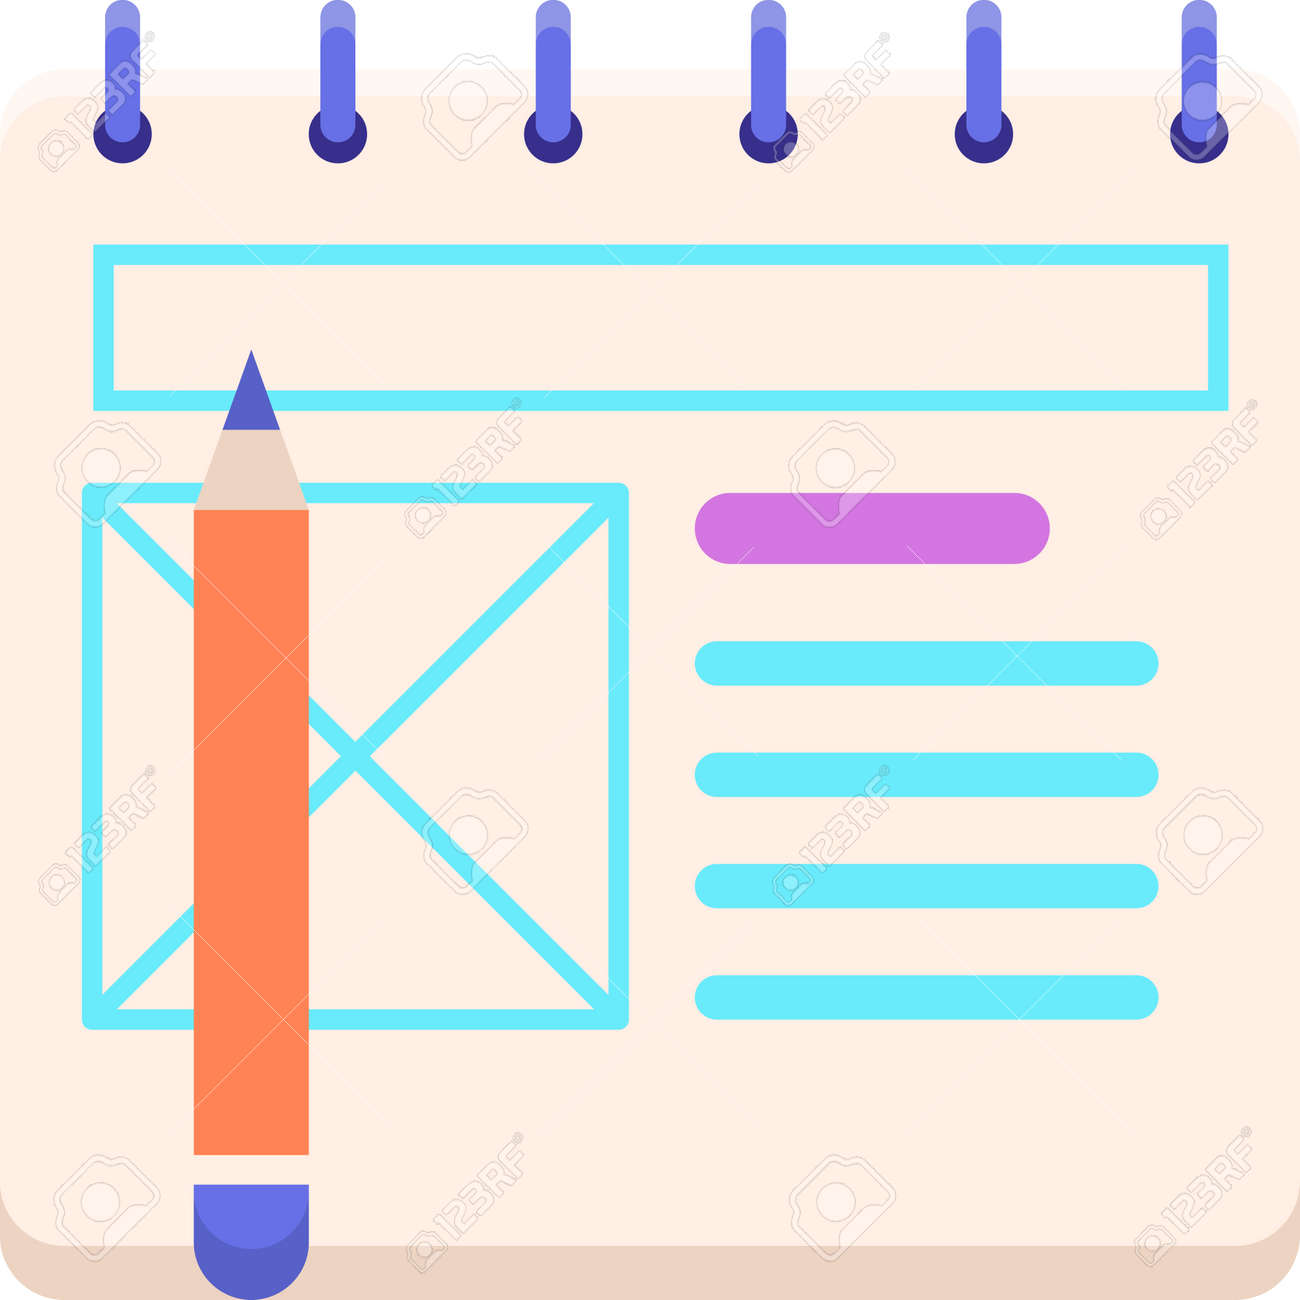 Vector vector flat icon of wireframe sketching using paper and pencil illustration